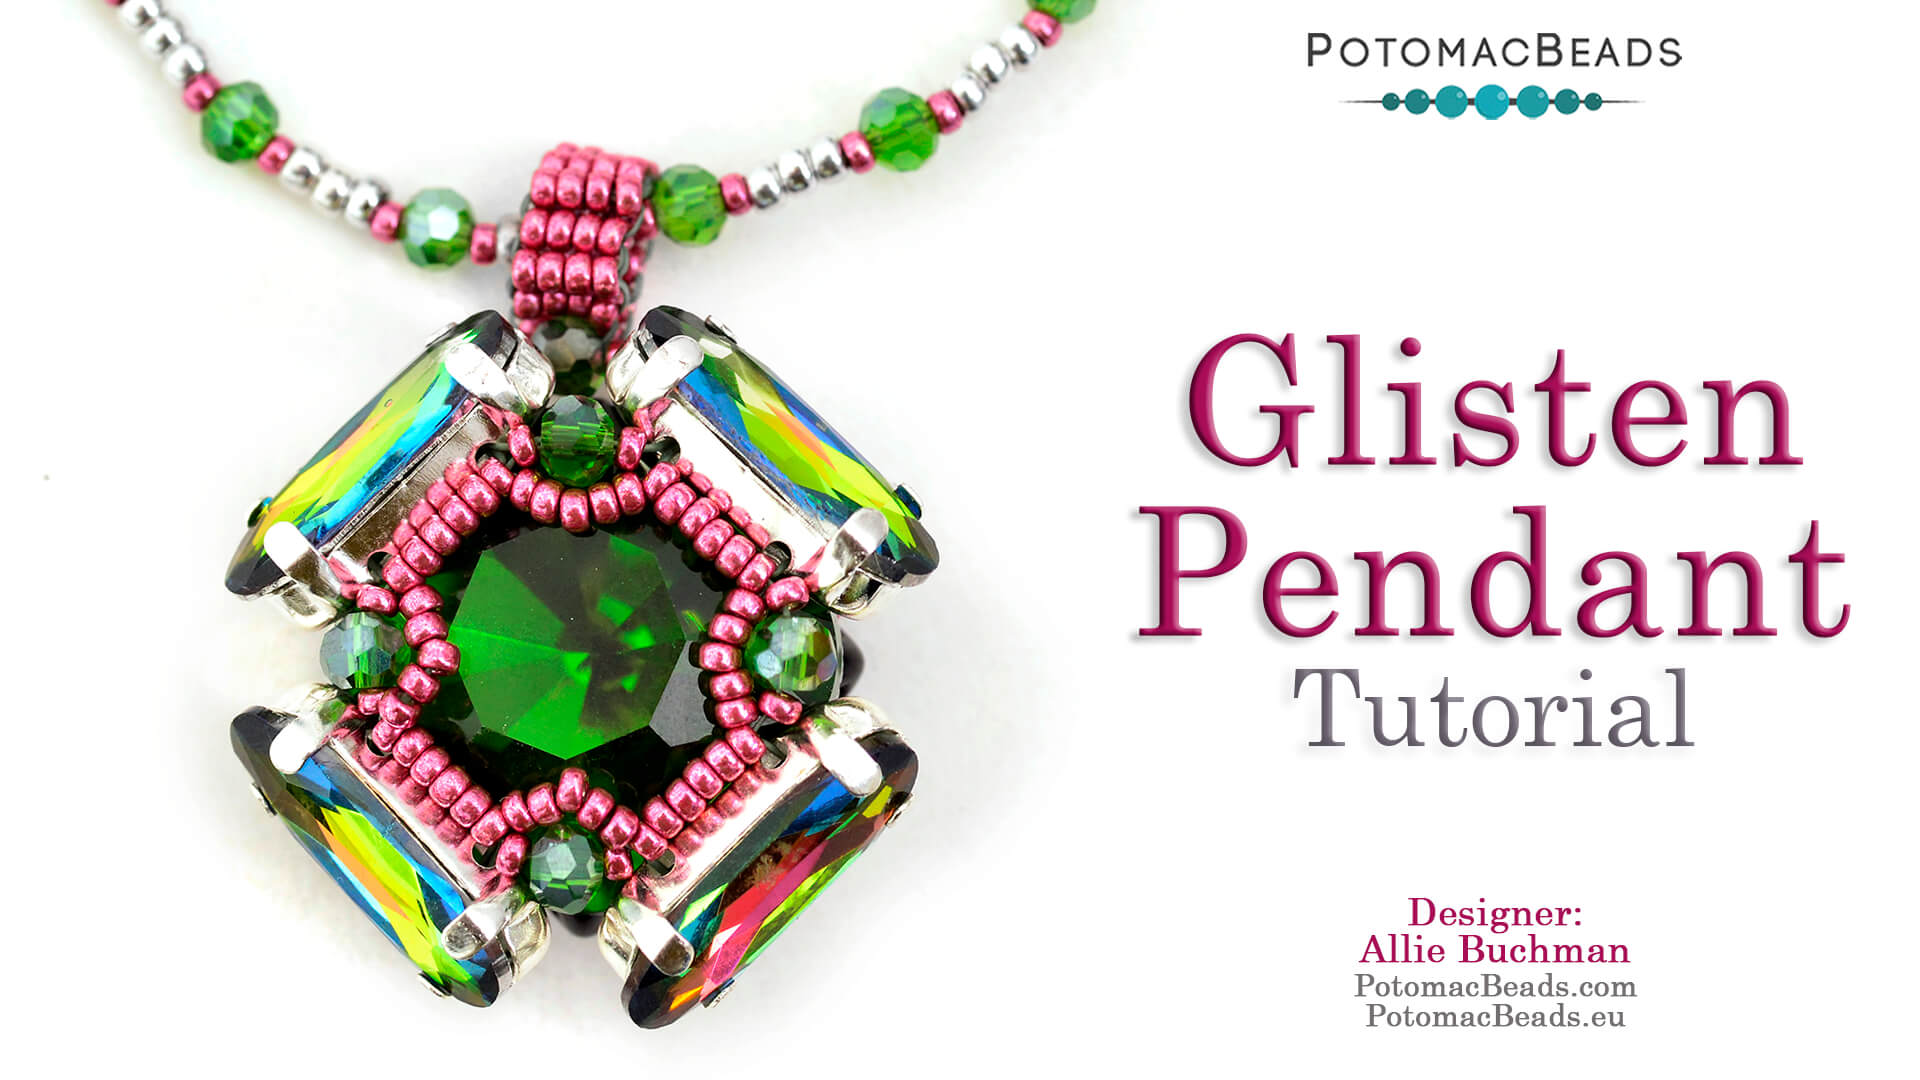 How to Bead / Videos Sorted by Beads / QuadBow & PieDuo Bead Videos / Glisten Pendant Tutorial